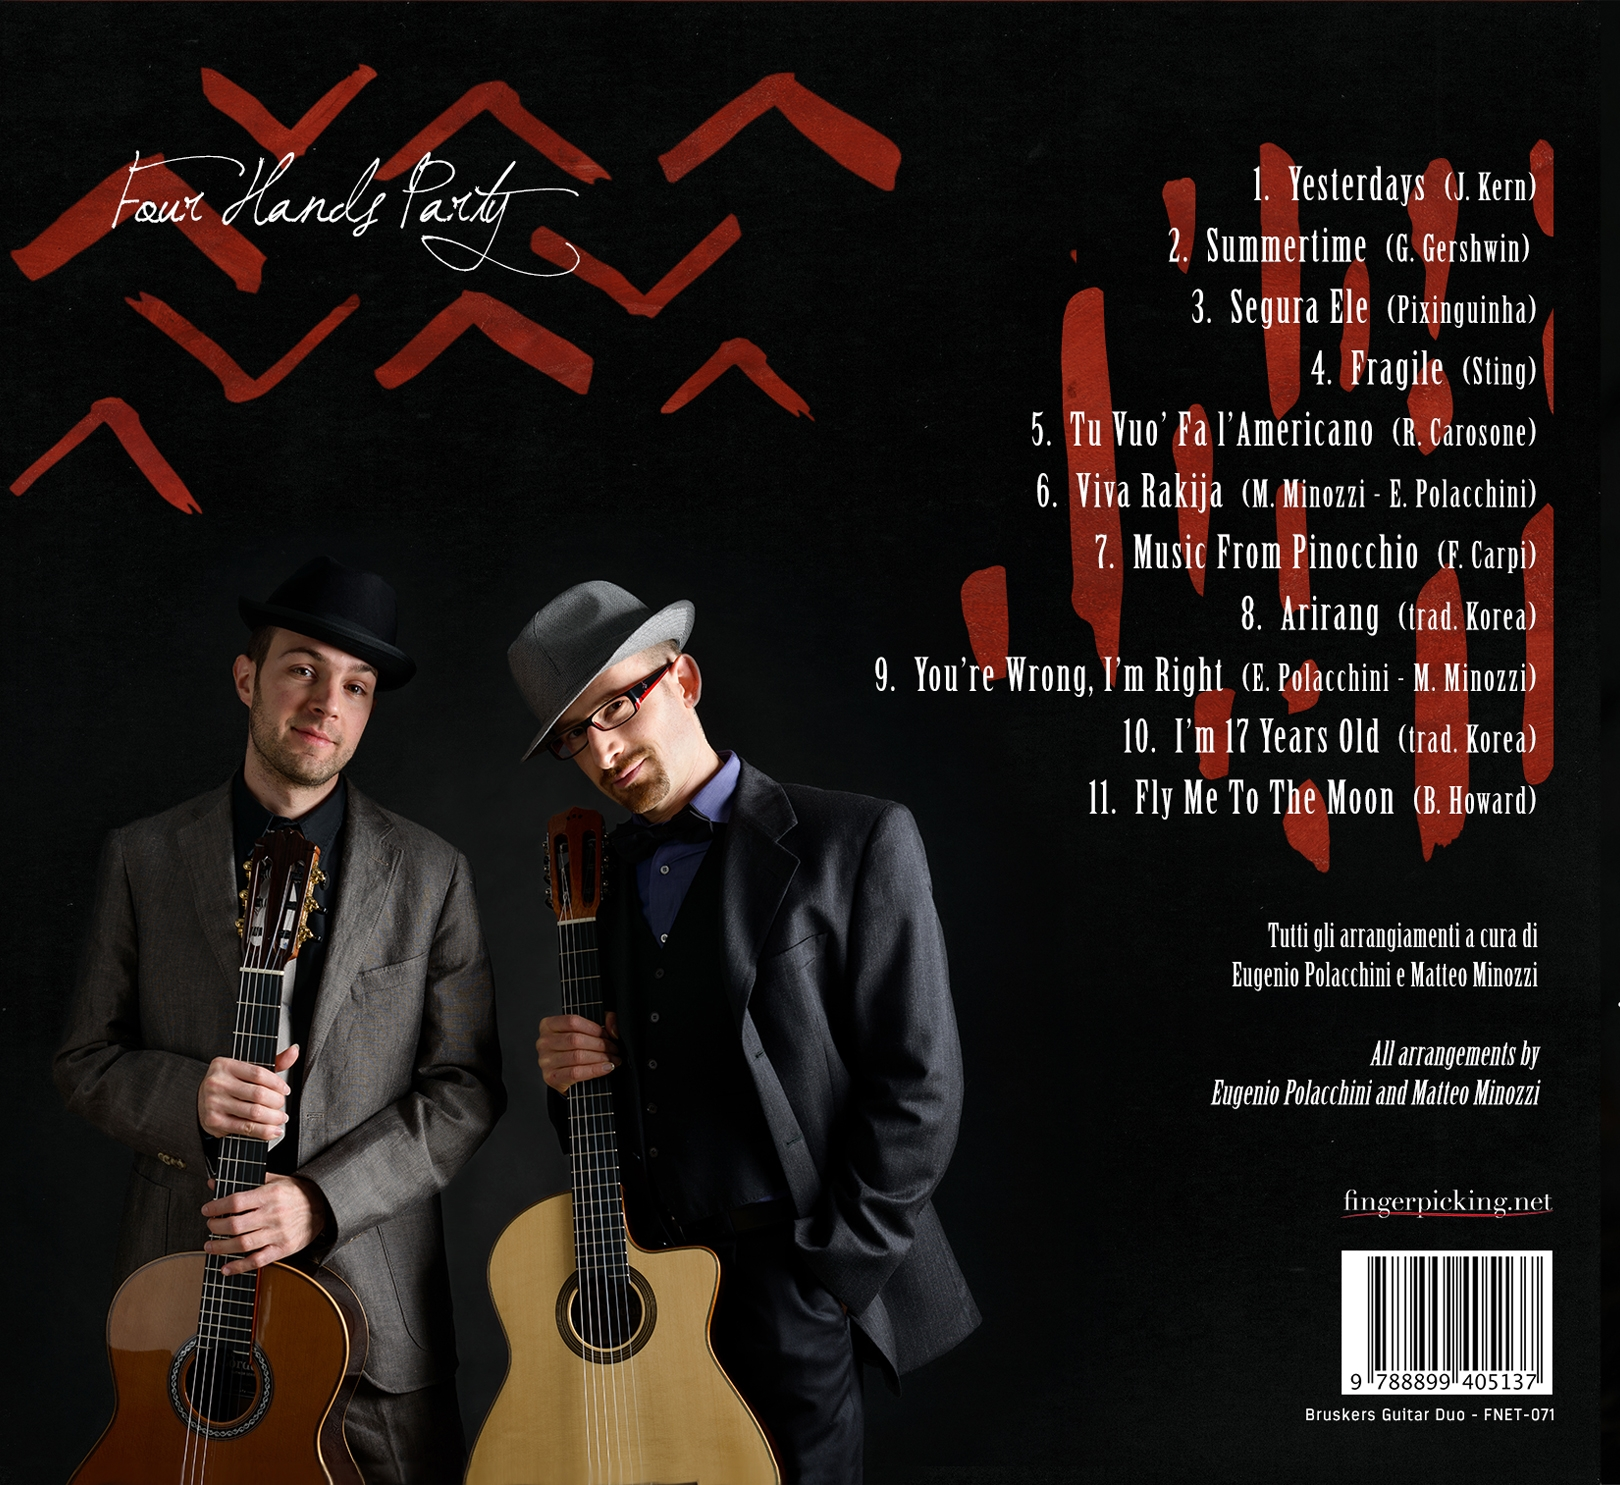 Four Hands Party - CD back side - Bruskers Guitar Duo